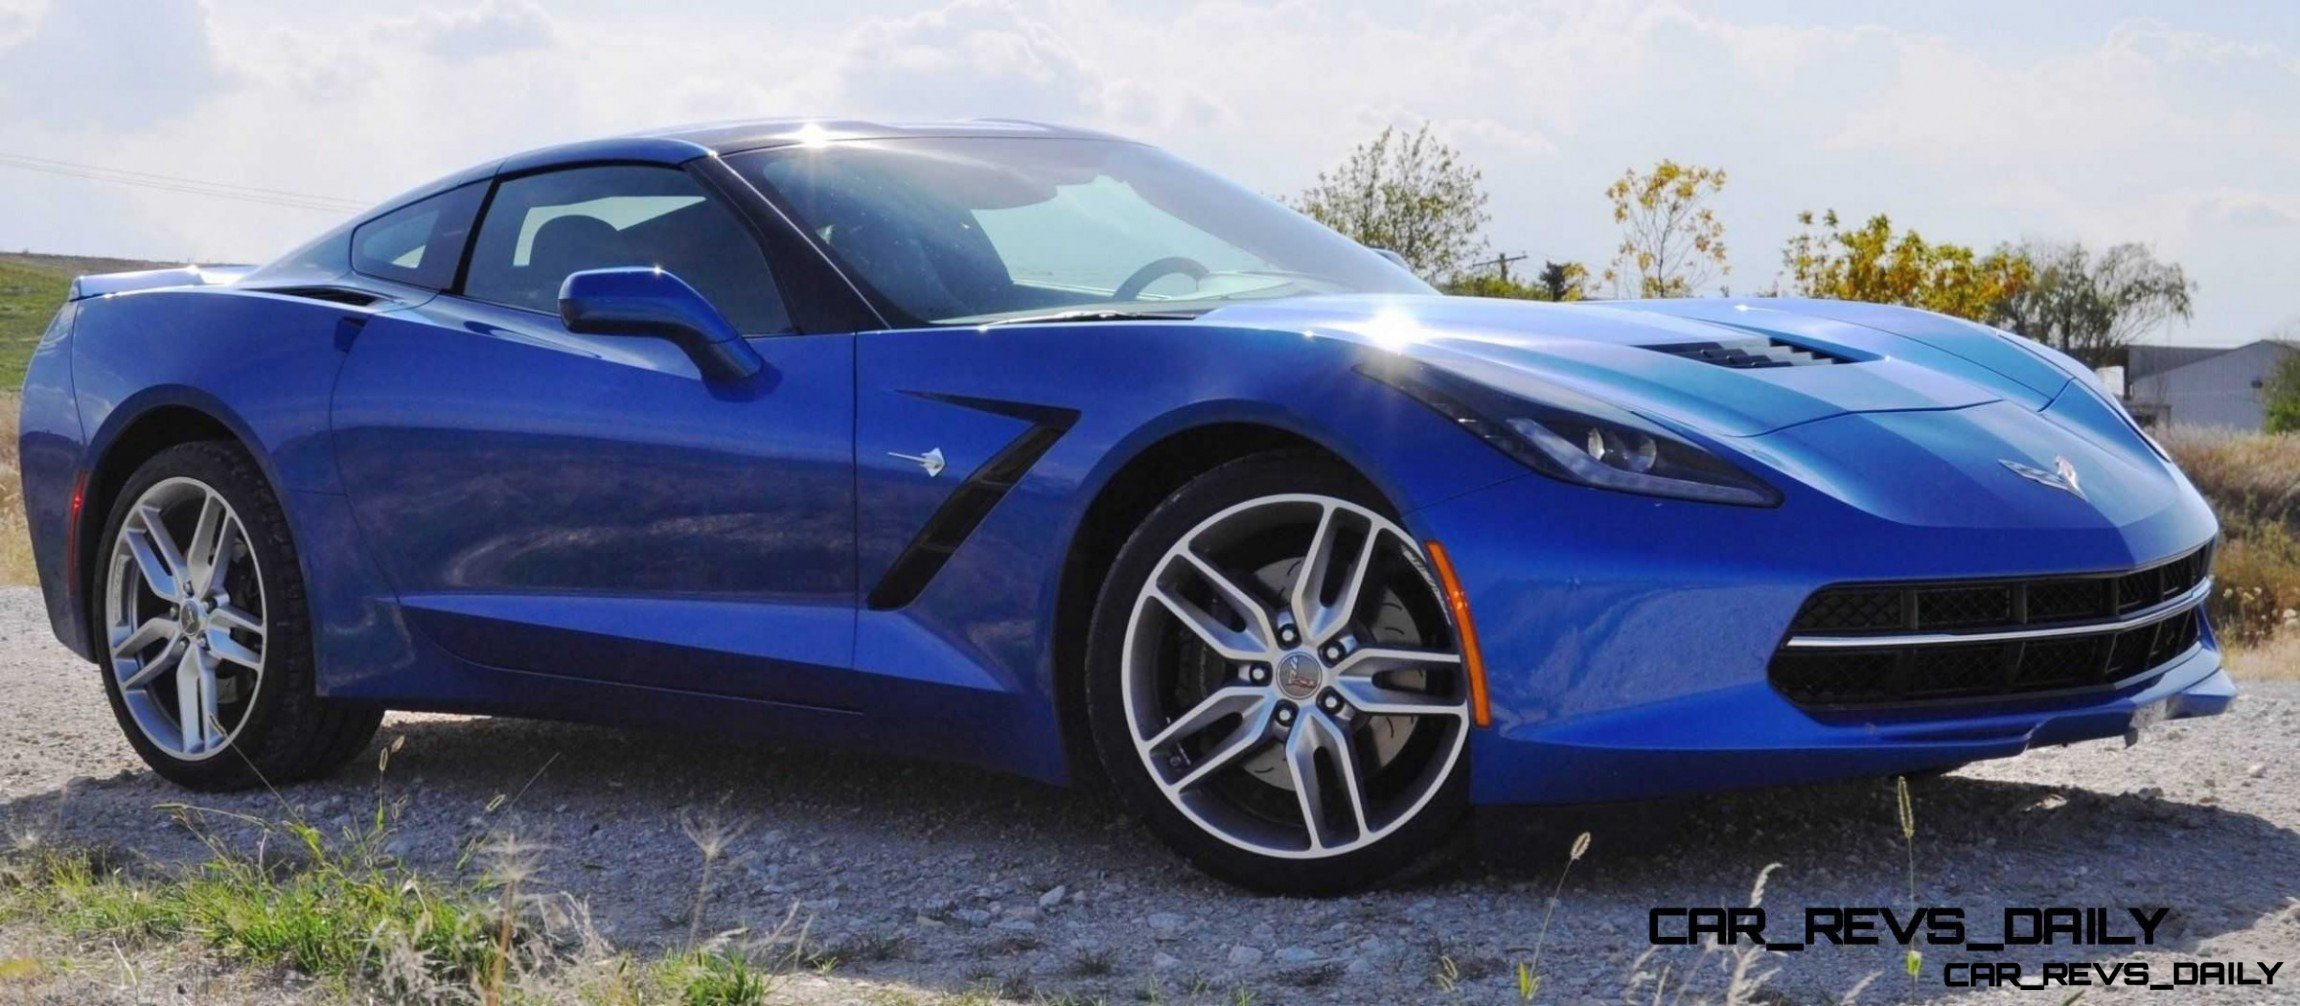 2014 chevrolet corvette stingray z51 in 102 super high res photos near. Cars Review. Best American Auto & Cars Review